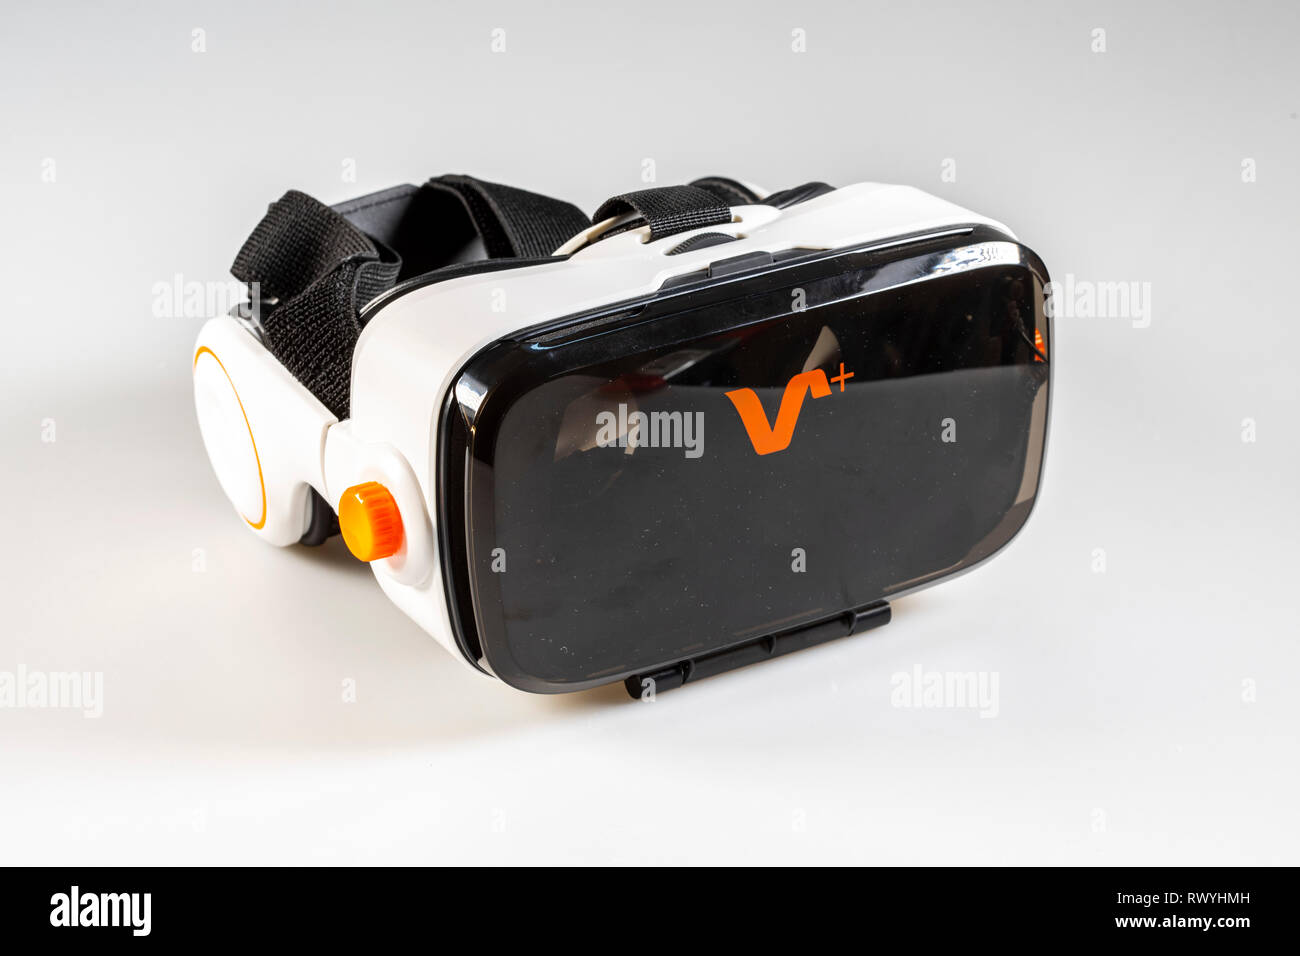 VR-Brille, Virtual Reality Brille, 3-D-Animation, - Stock Image